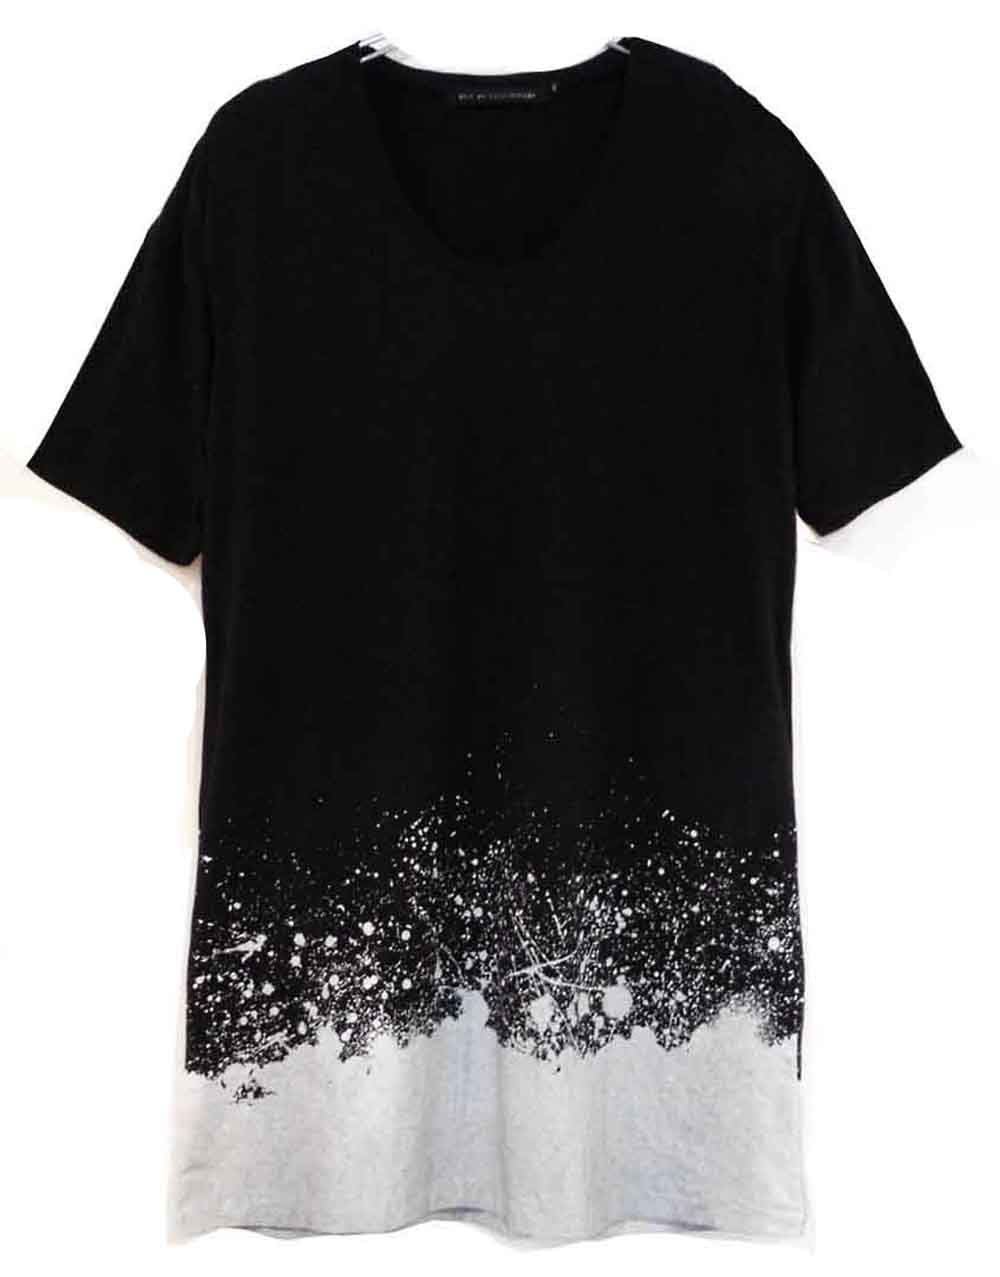 Cotton U-neck long T-shirt